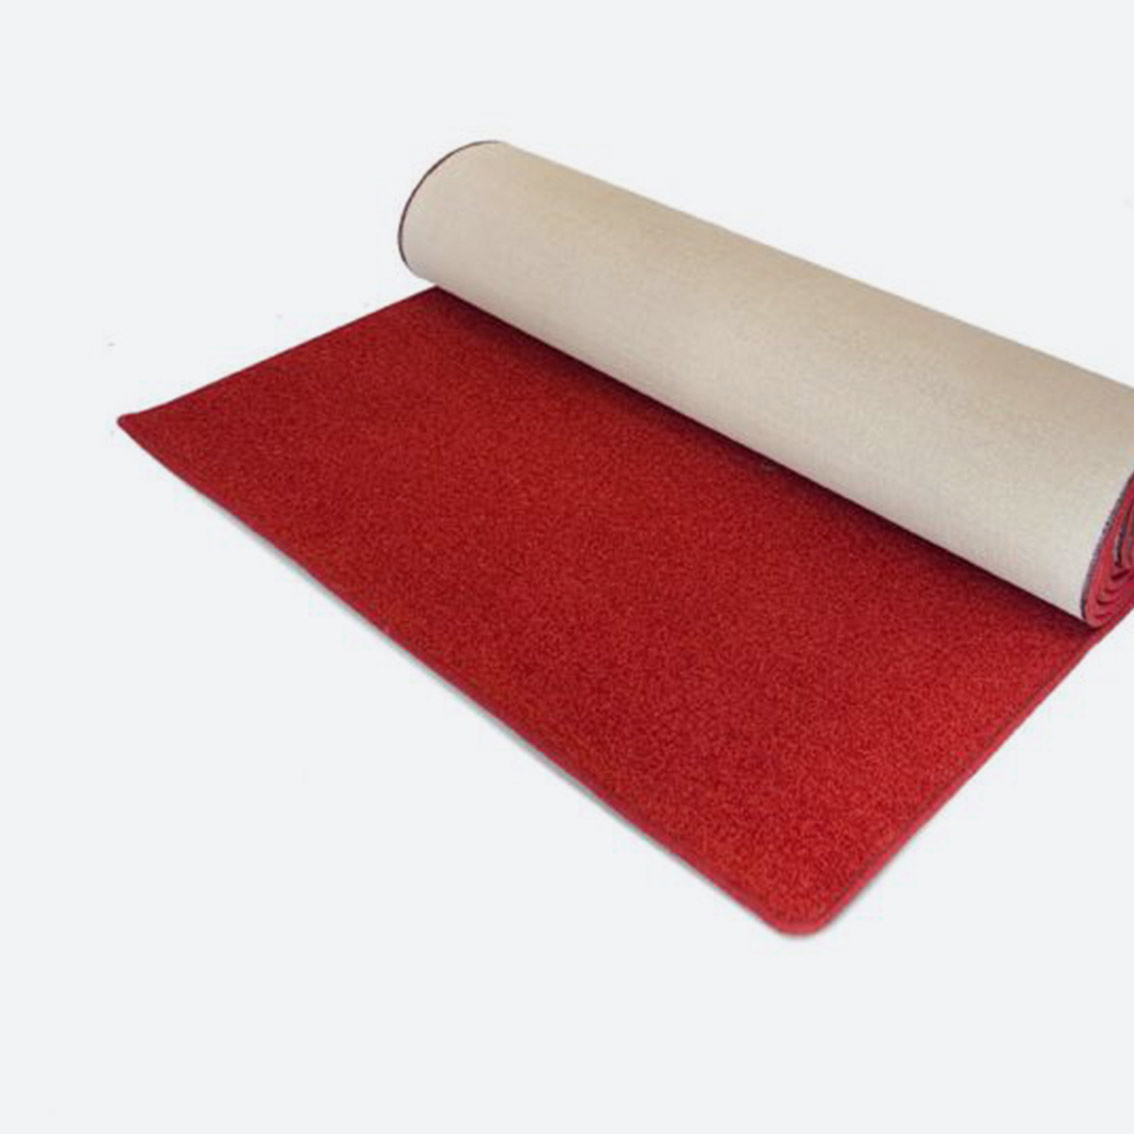 RED CARPET   FROM $110.00